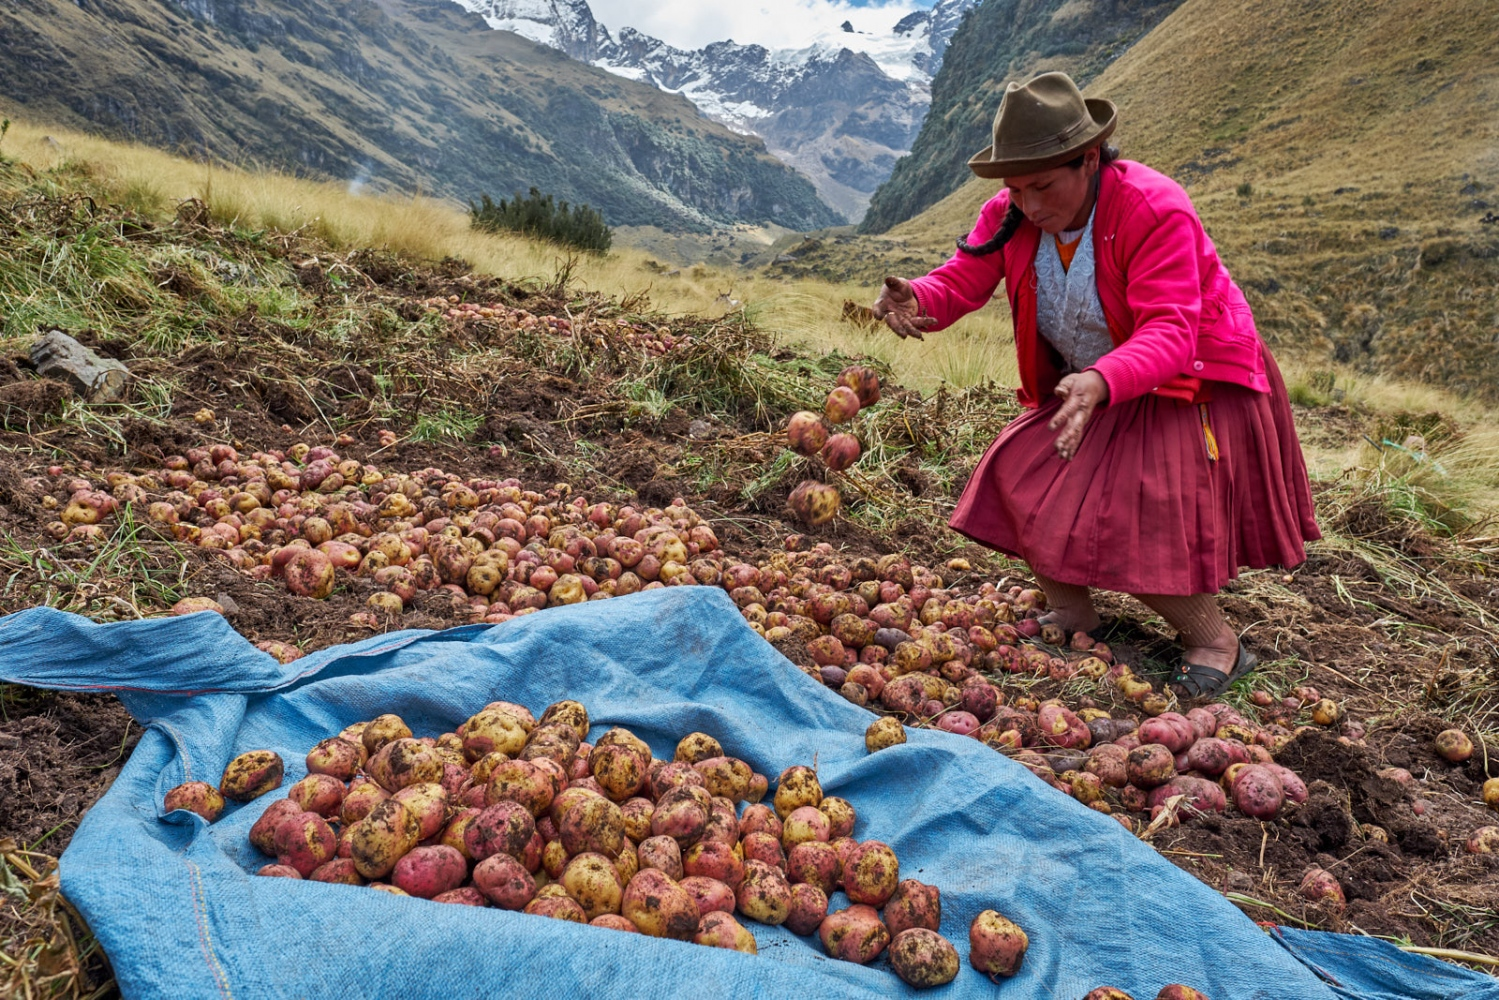 A woman gathers harvested potatoes in the remote mountain community of Huamanachocque in the Urubamba Mountains, Peru.